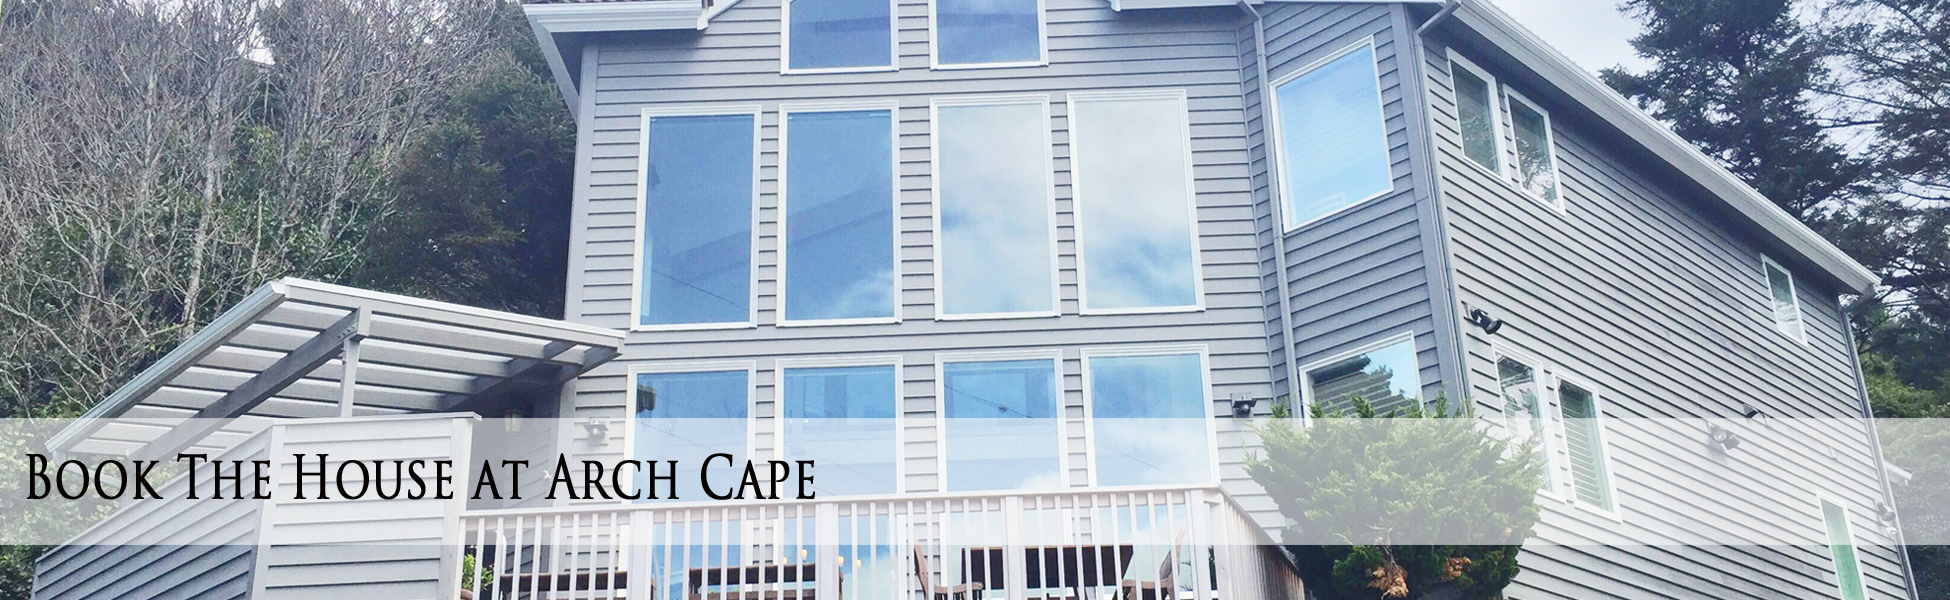 Book The House at Arch Cape